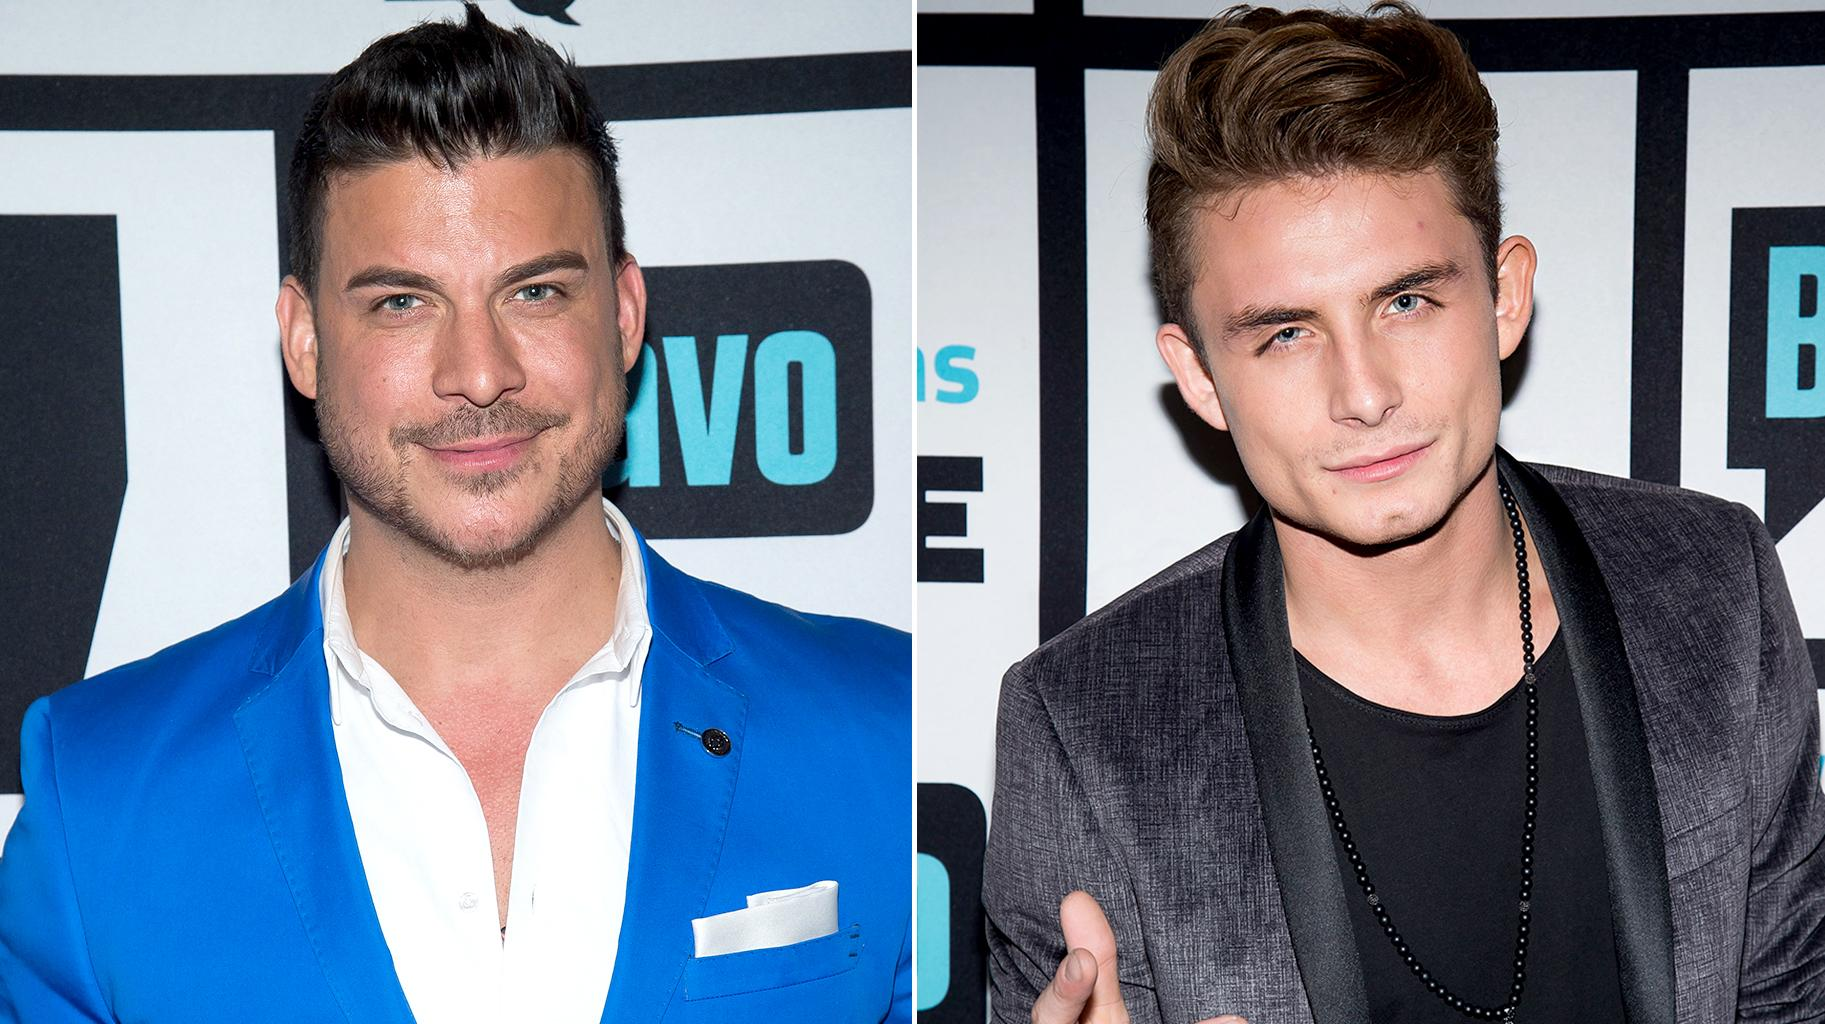 Jax Taylor Gives Credit To James Kennedy For Making 'A Lot Of Positive Changes'